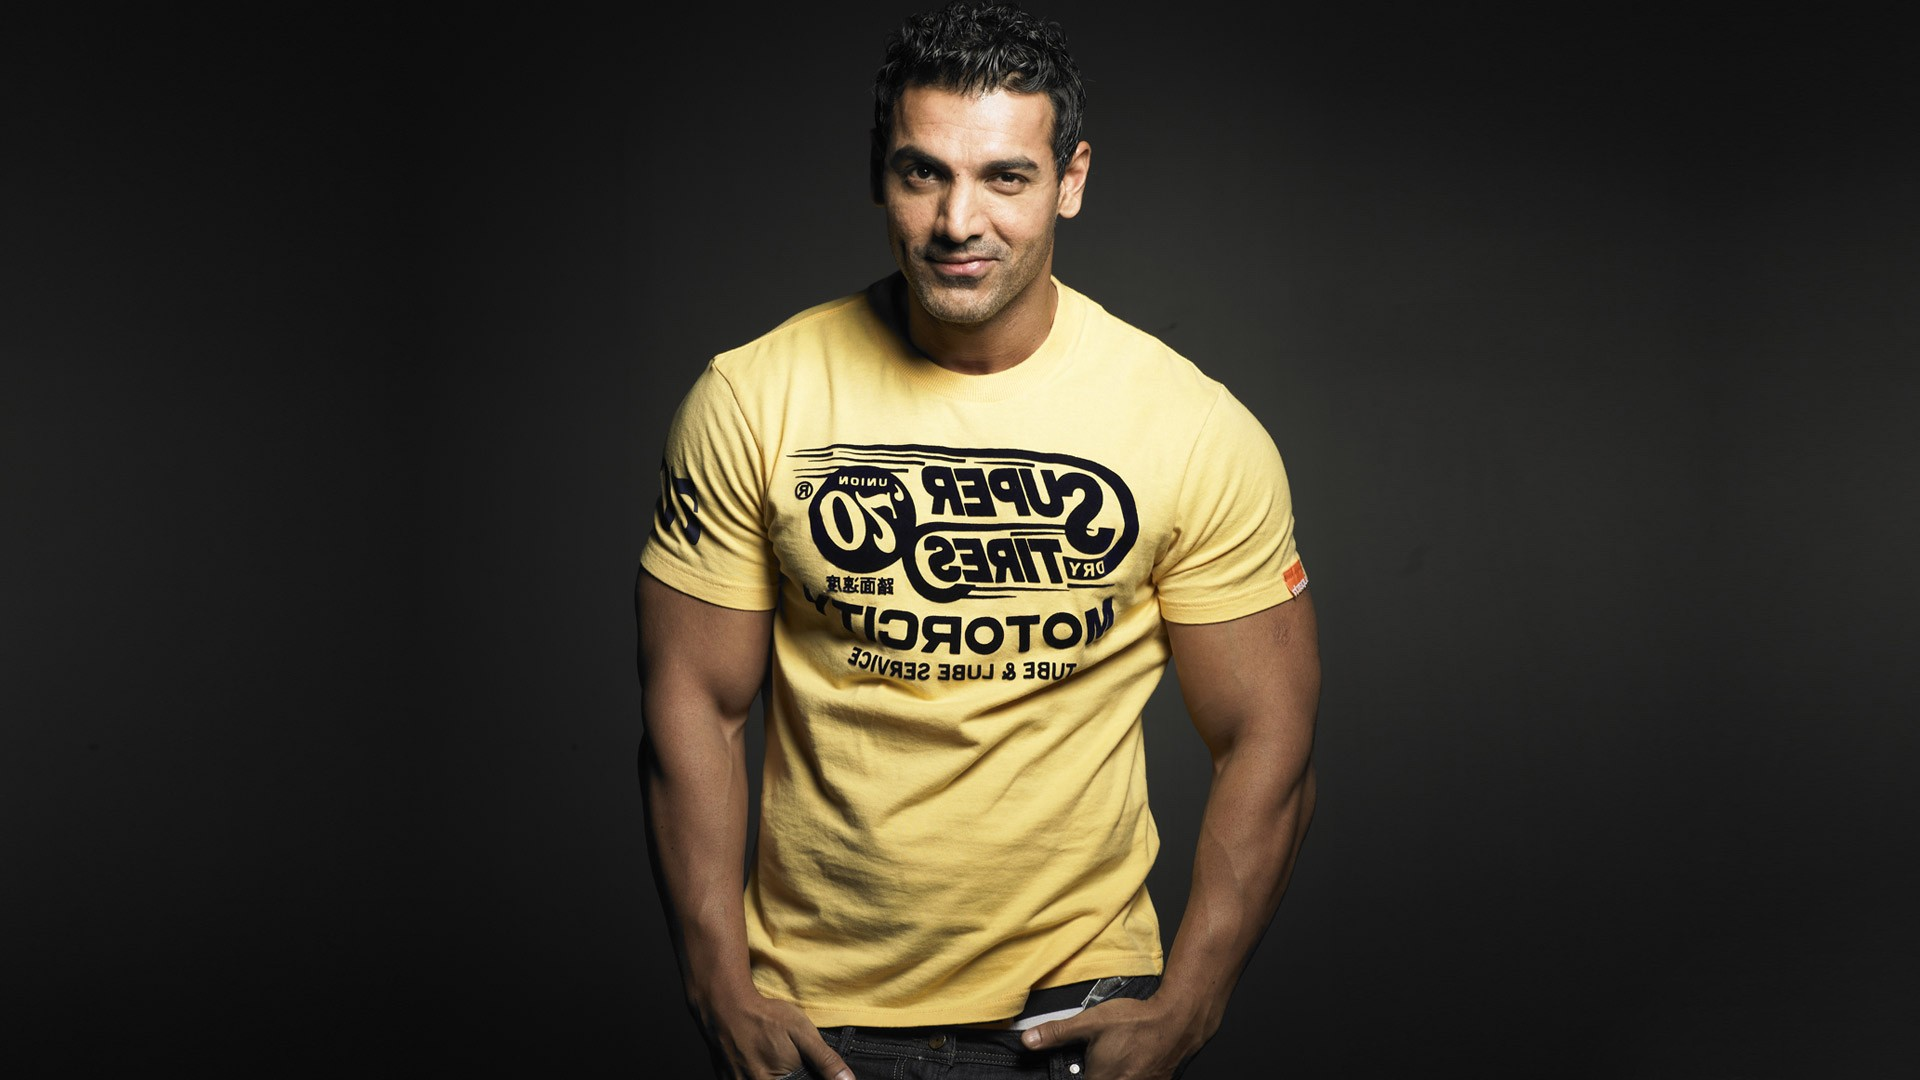 Wallpaper download john abraham - John Abraham 540x960 Resolution